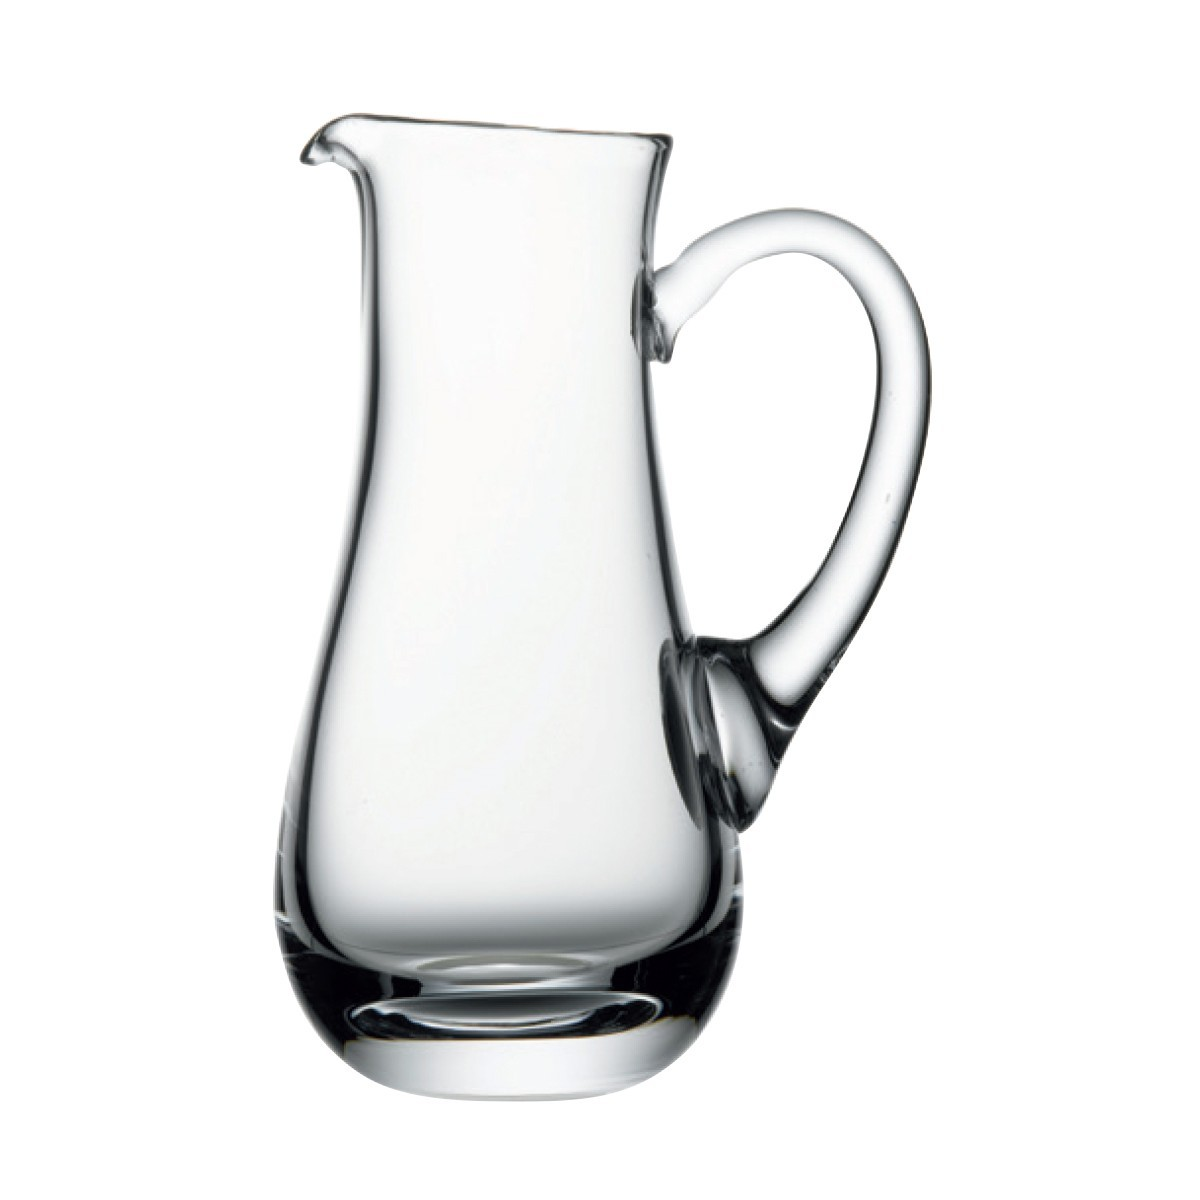 Made To Order 7.25H X 2 3/4T 23.25 oz Handmade Pitcher/Case of 6